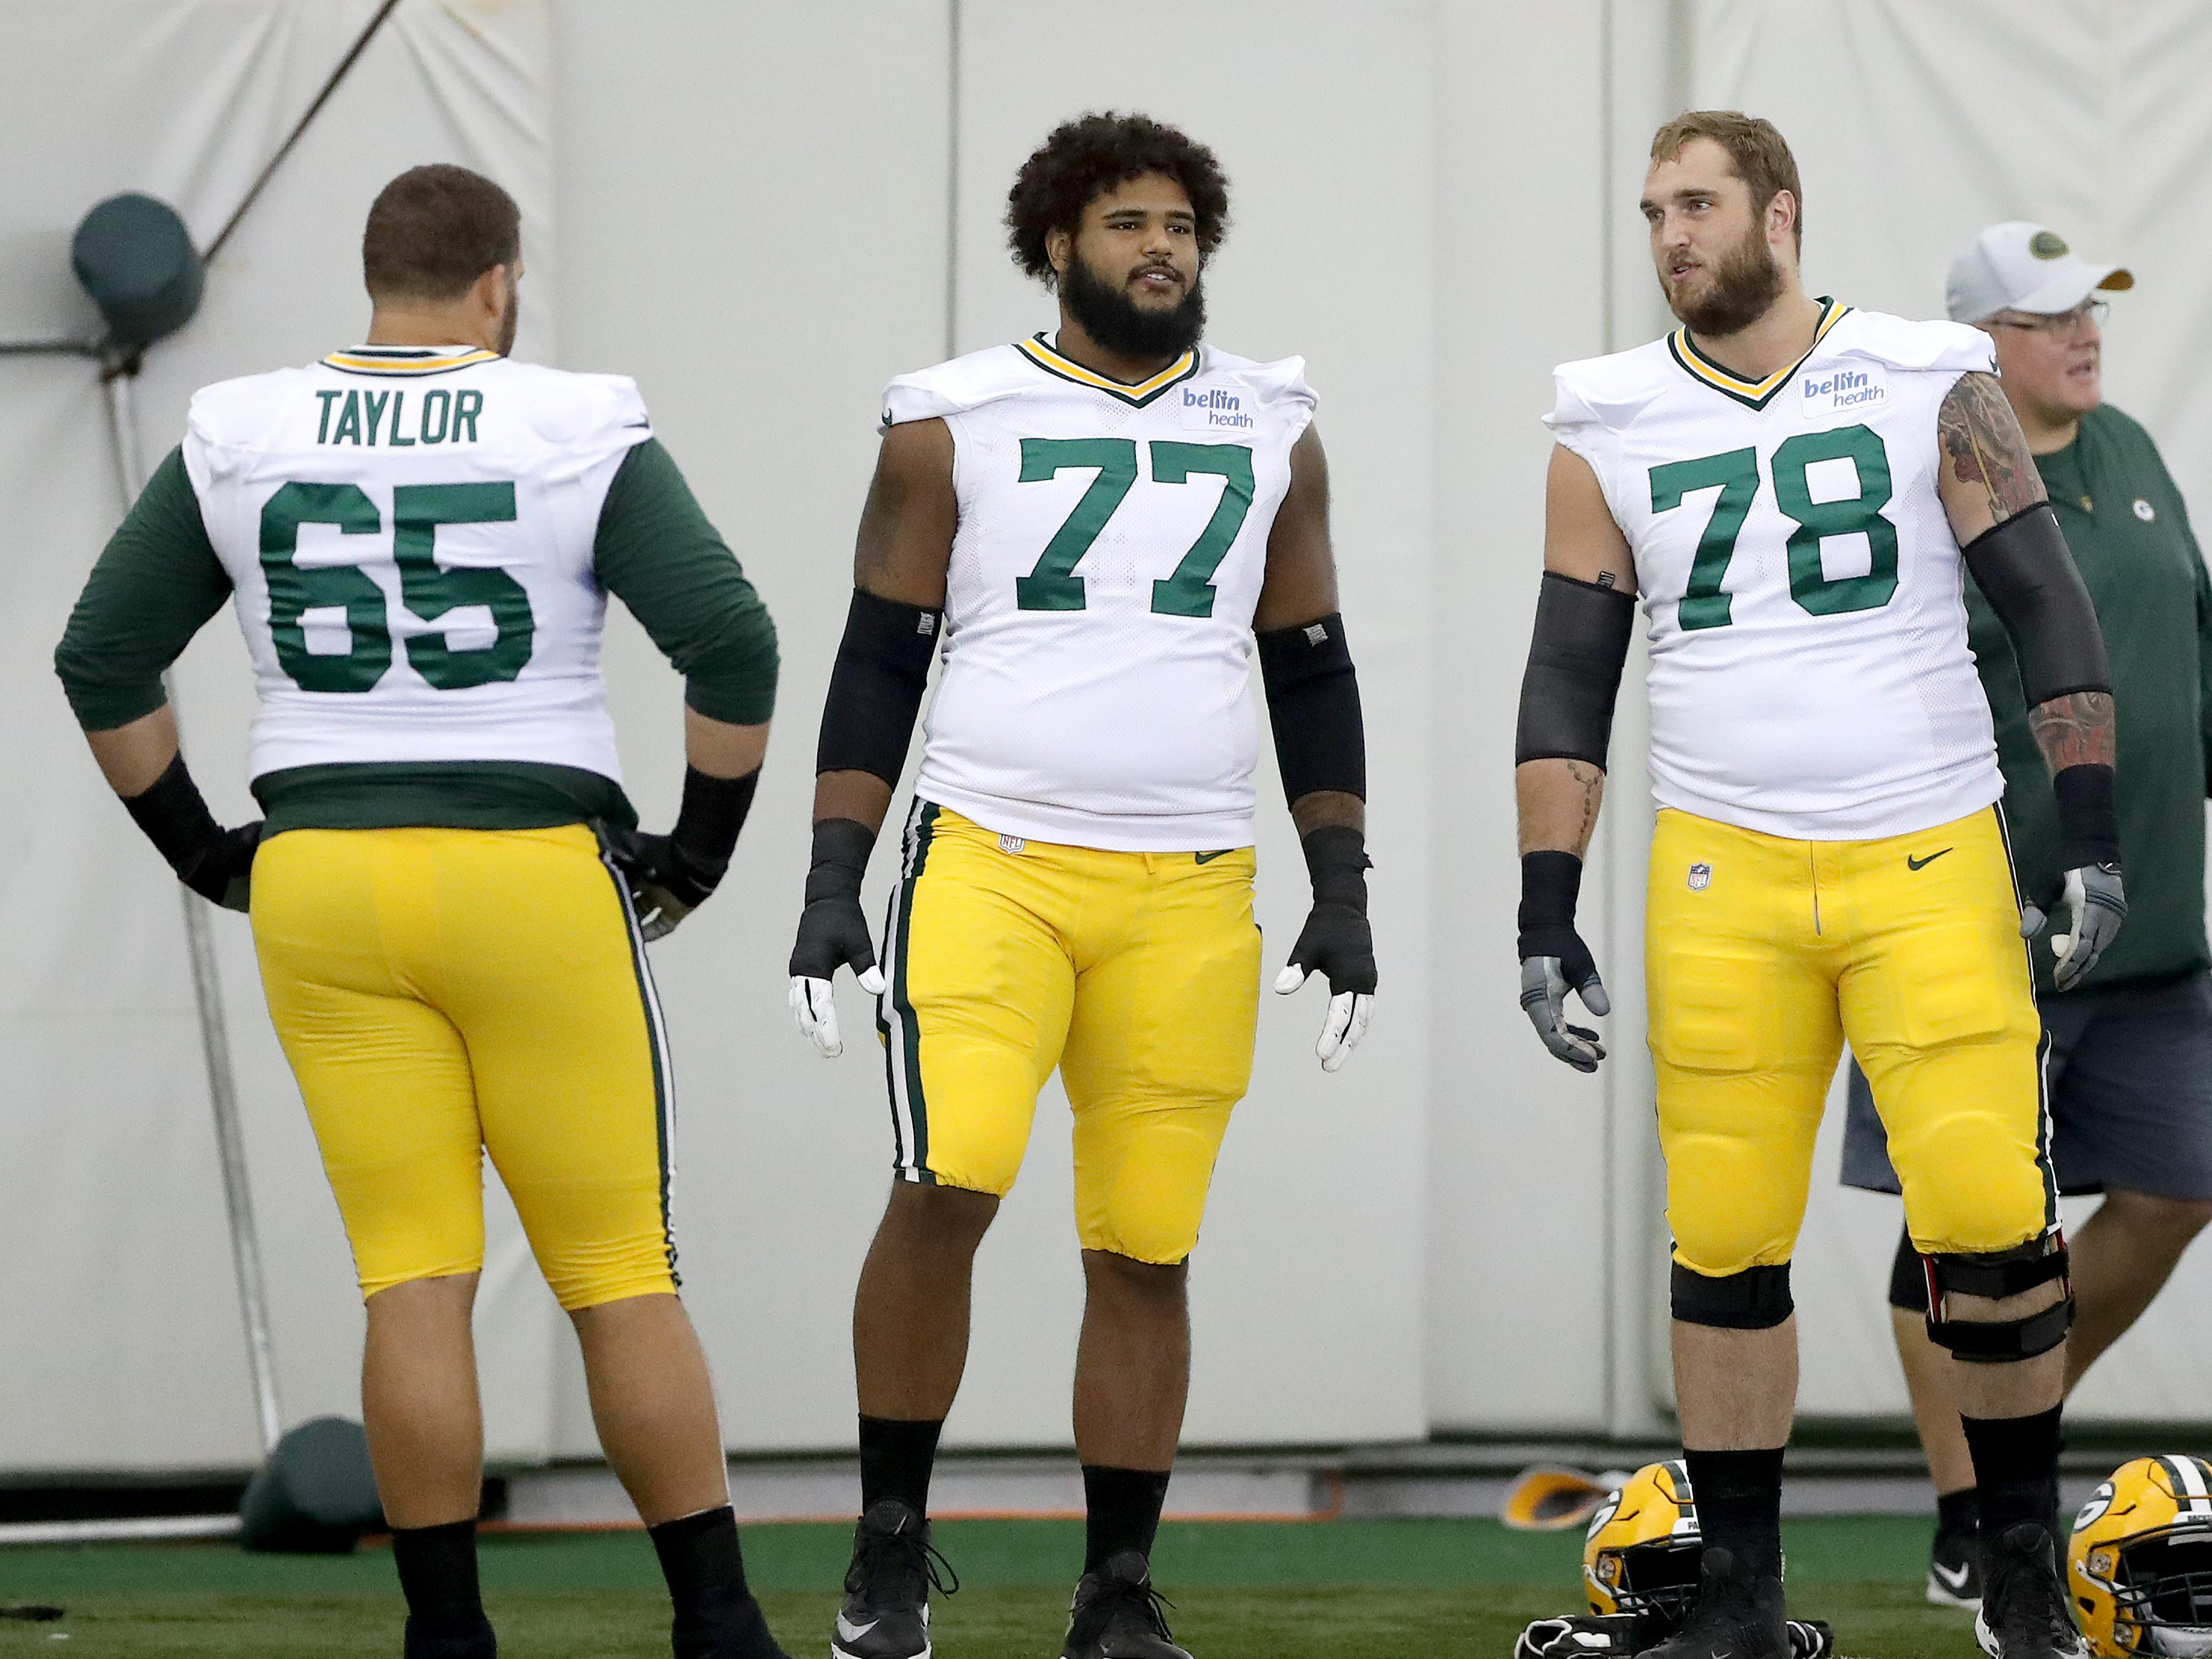 Green Bay Packers offensive guard Lane Taylor (65), / and offensive tackle Jason Spriggs (78) talk before Packers practice in the Don Hutson Center Monday, September 3, 2018 in Ashwaubenon, Wis